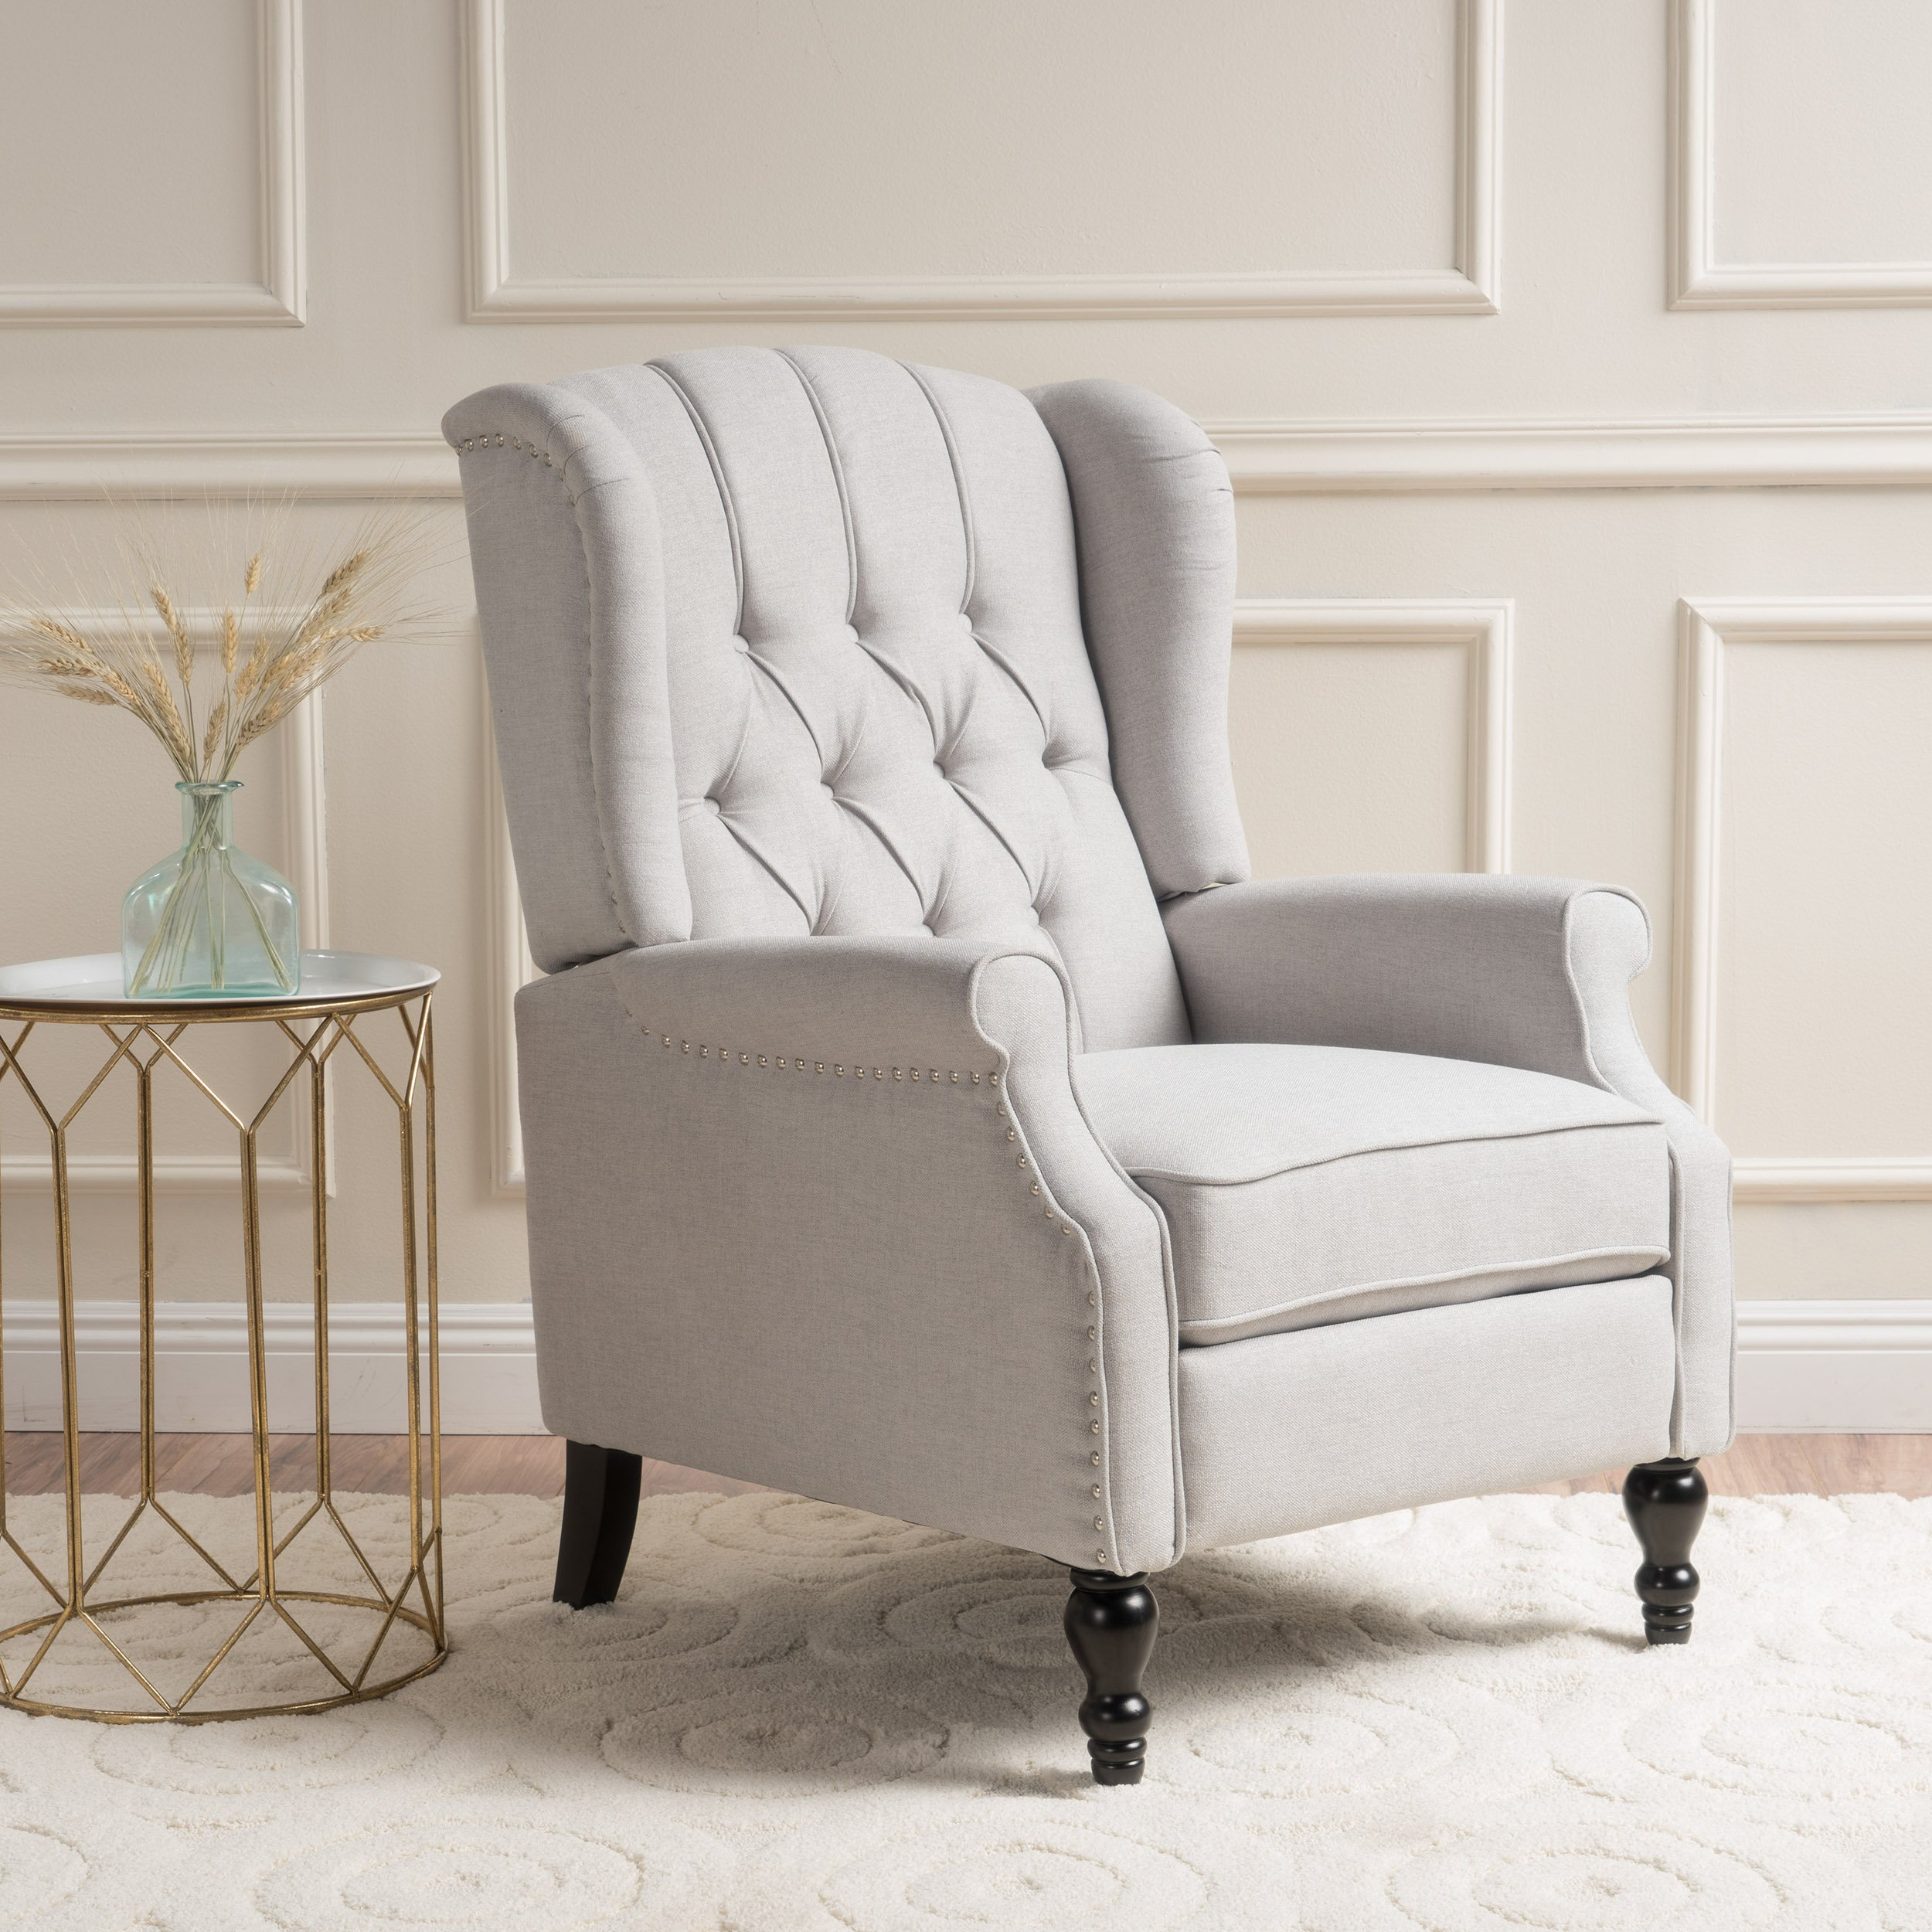 Christopher Knight Home Elizabeth Tufted Fabric Arm Chair Recliner, Beige by Christopher Knight Home